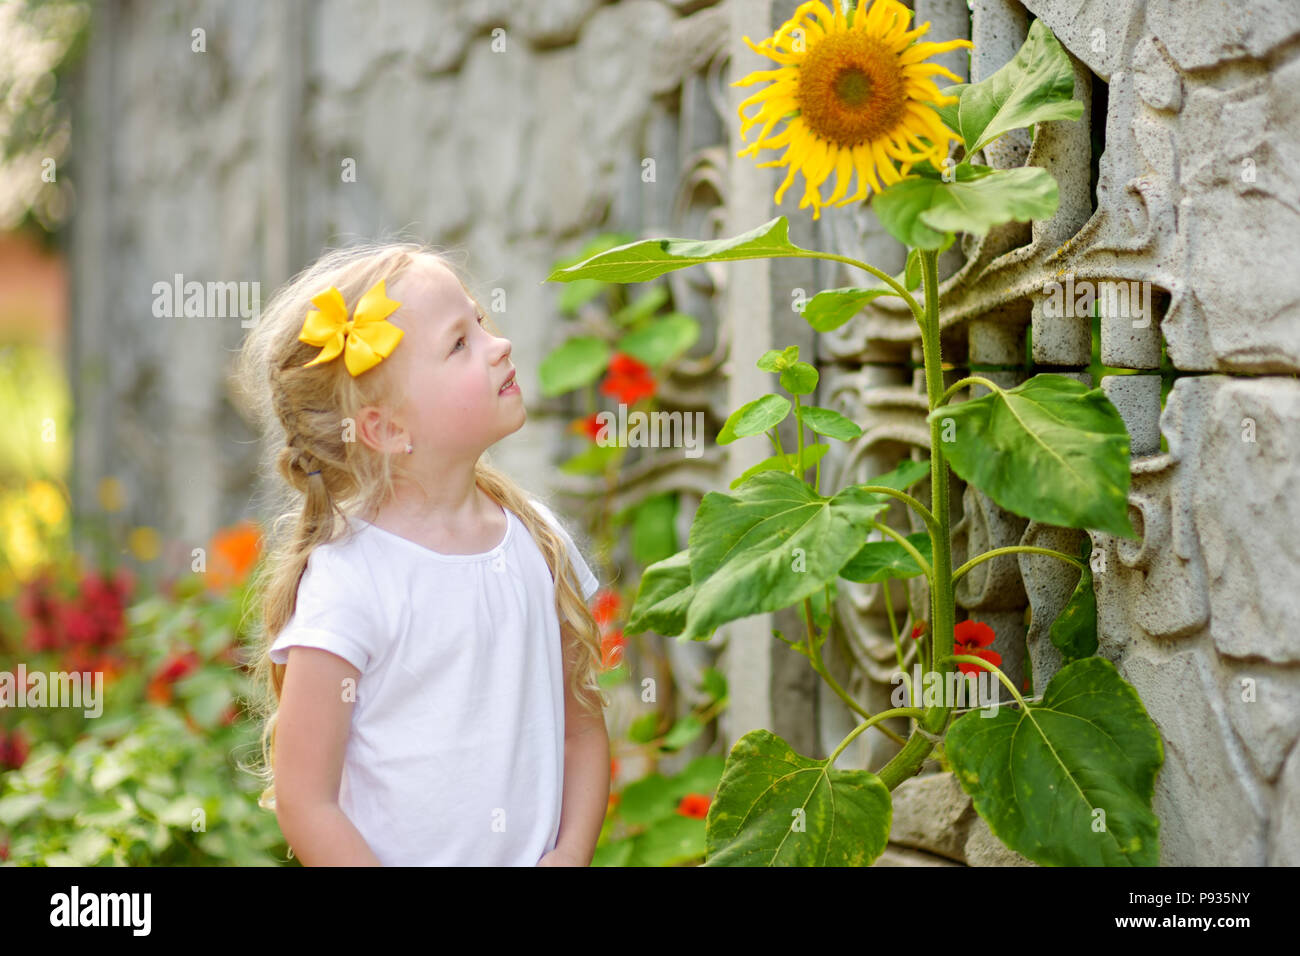 Cute little girl reaching to a sunflower in summer field. Exploring nature with kids. - Stock Image